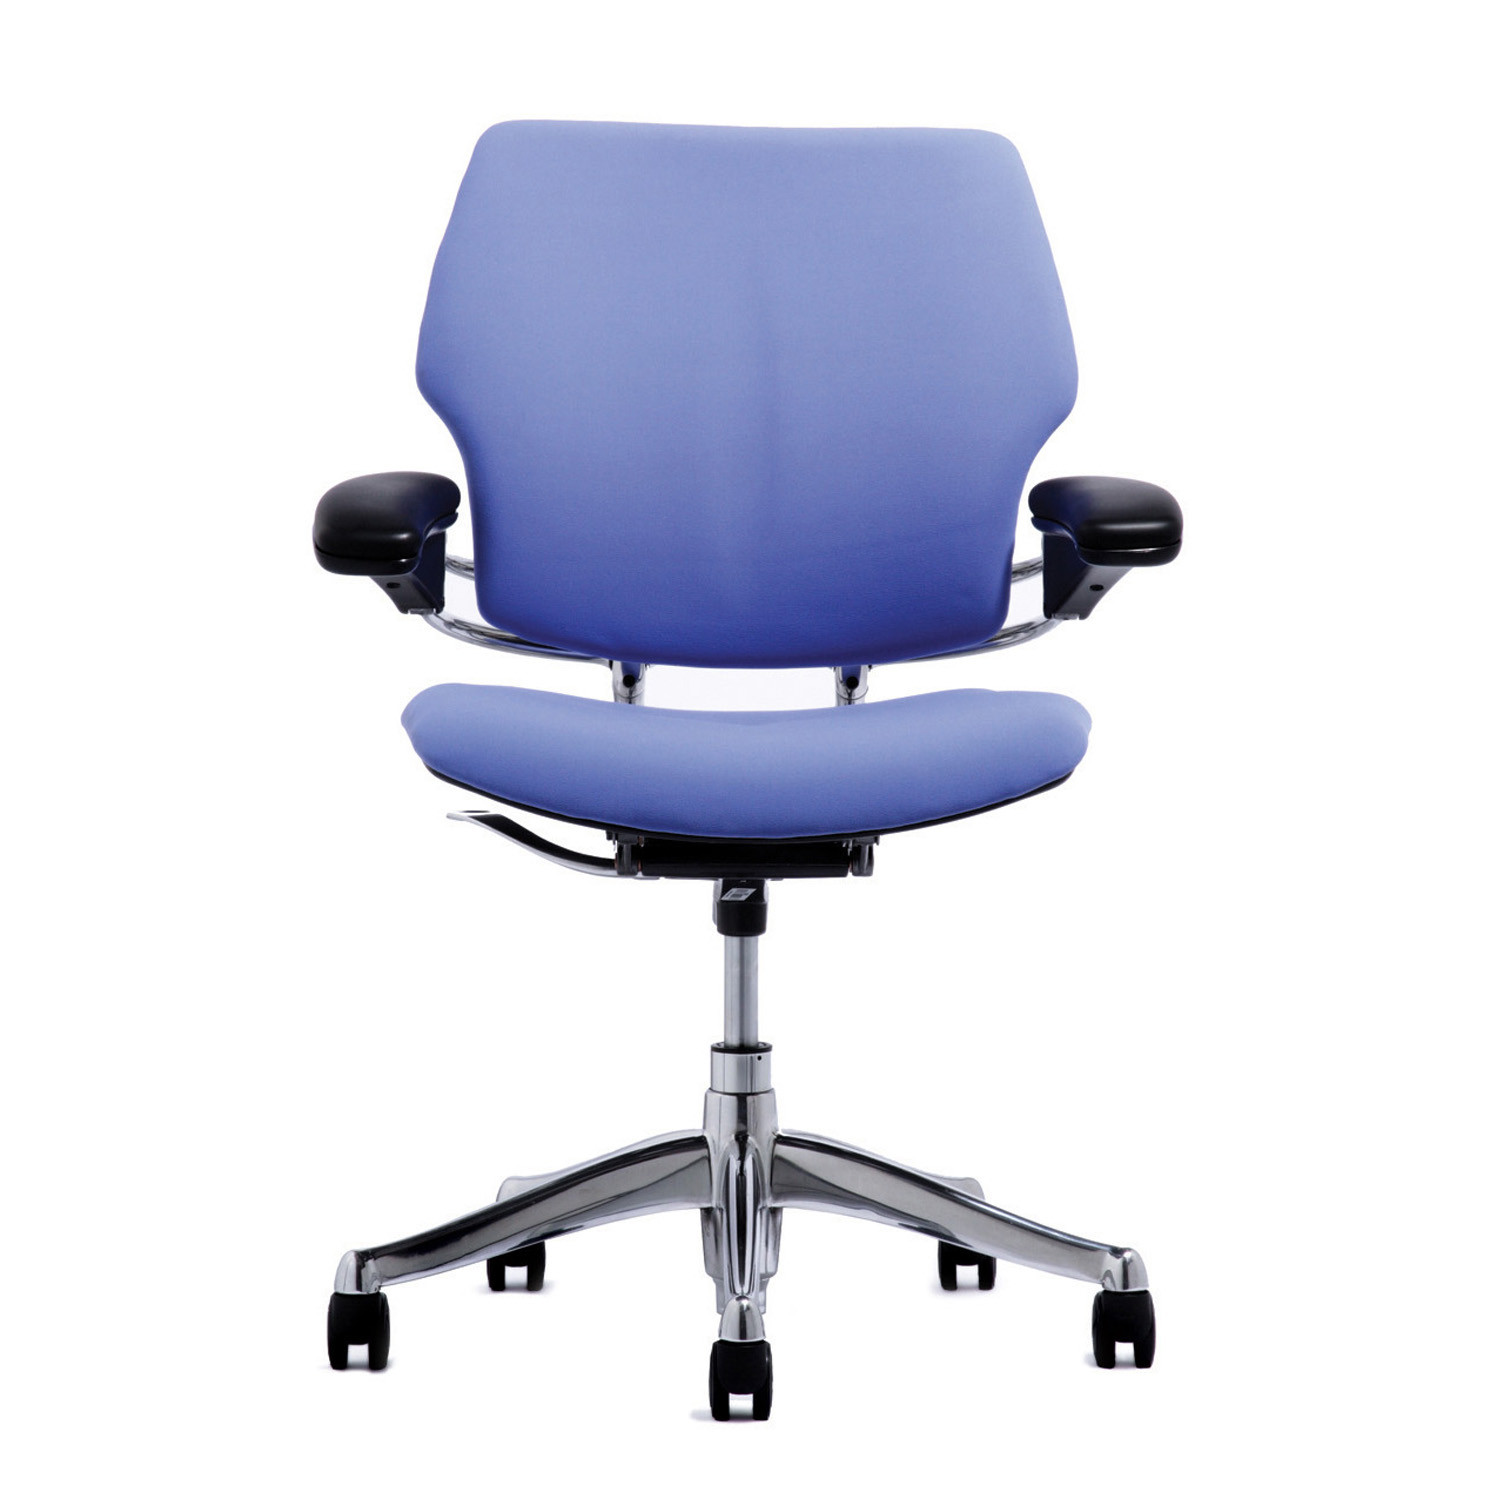 diffrient smart chair philippe starck ghost freedom task for sale classy desk